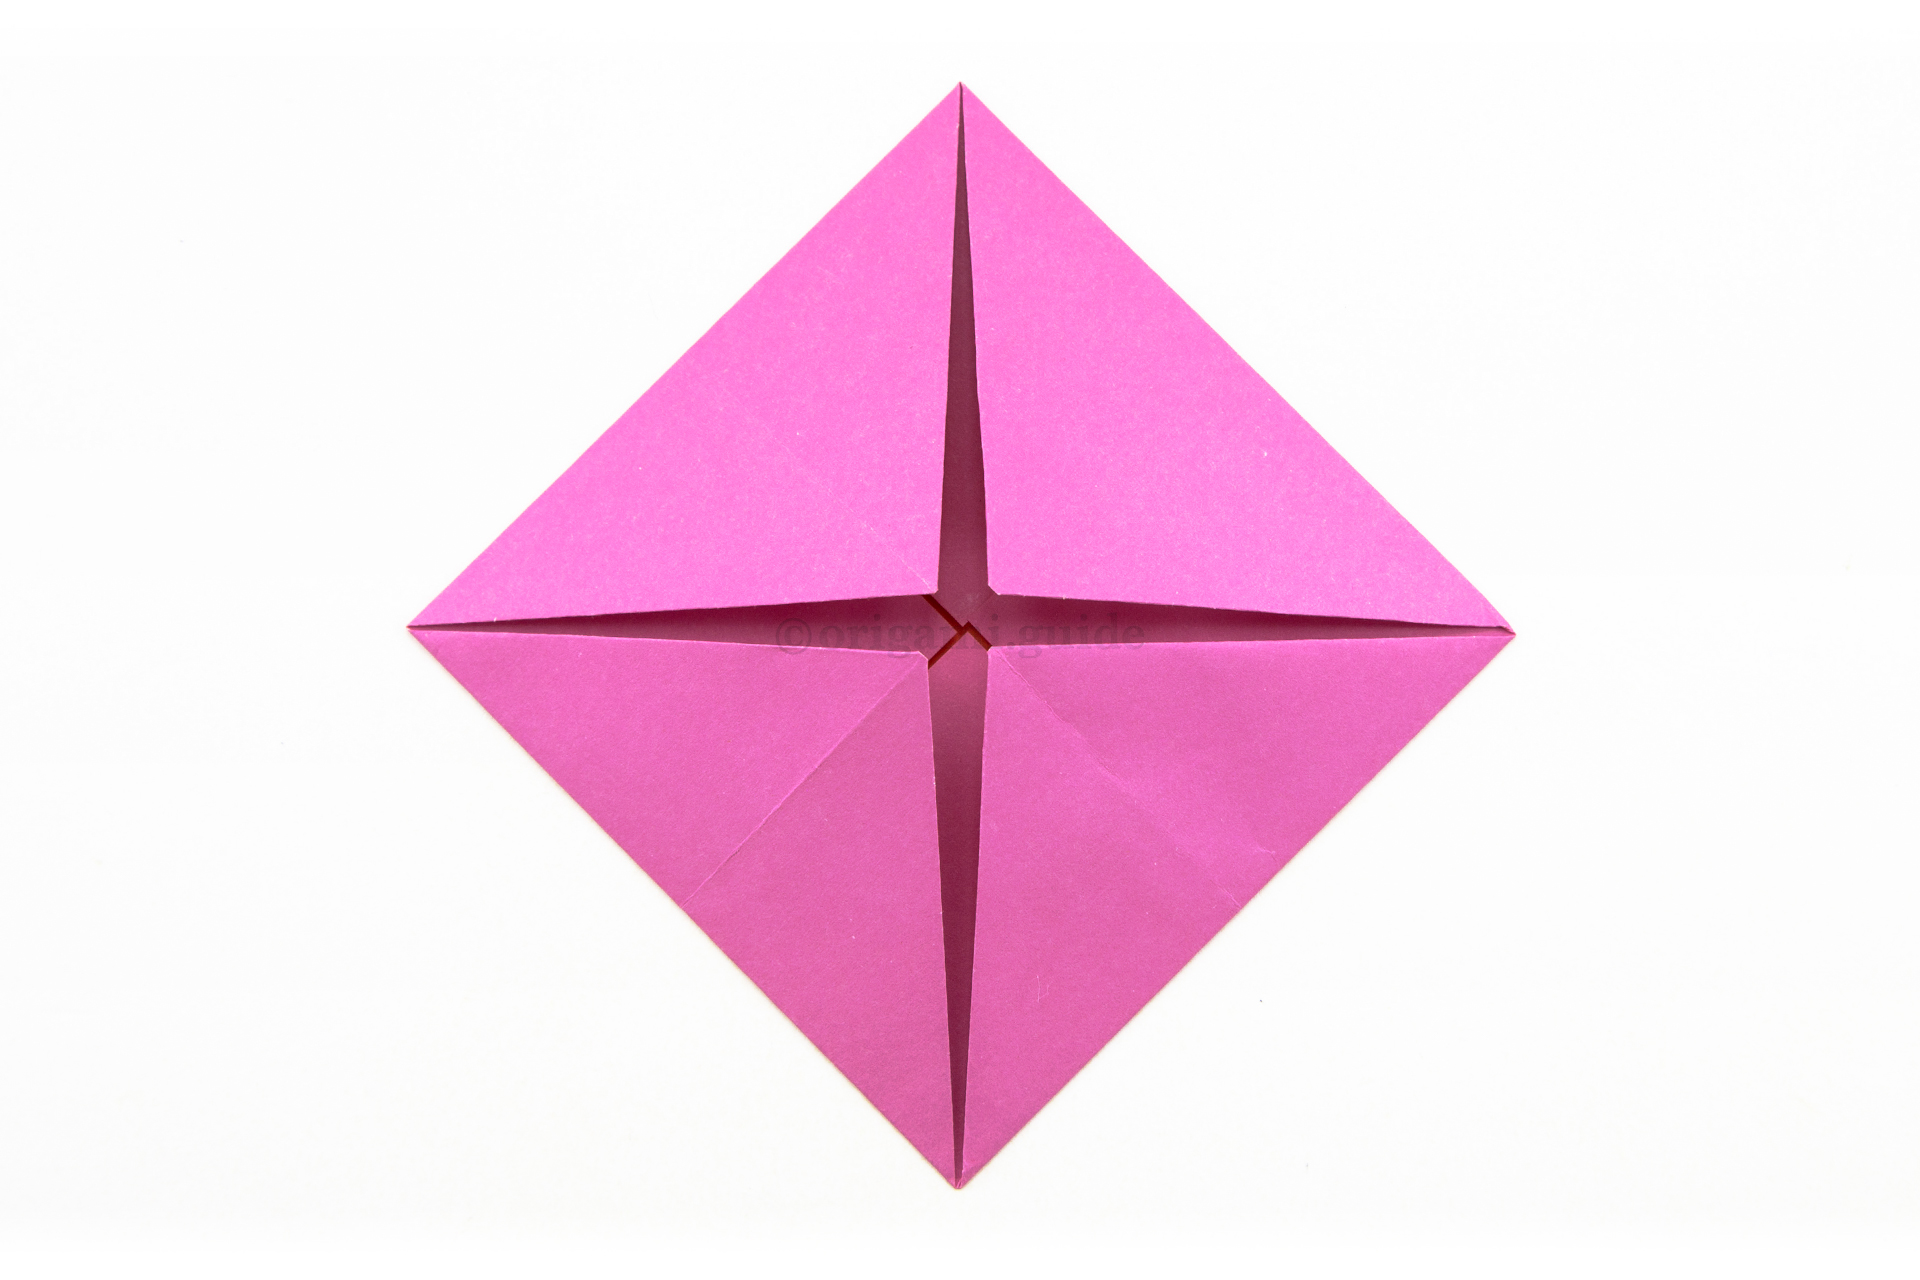 How To Make An Origami Lotus Flower Origami Guide Part 2